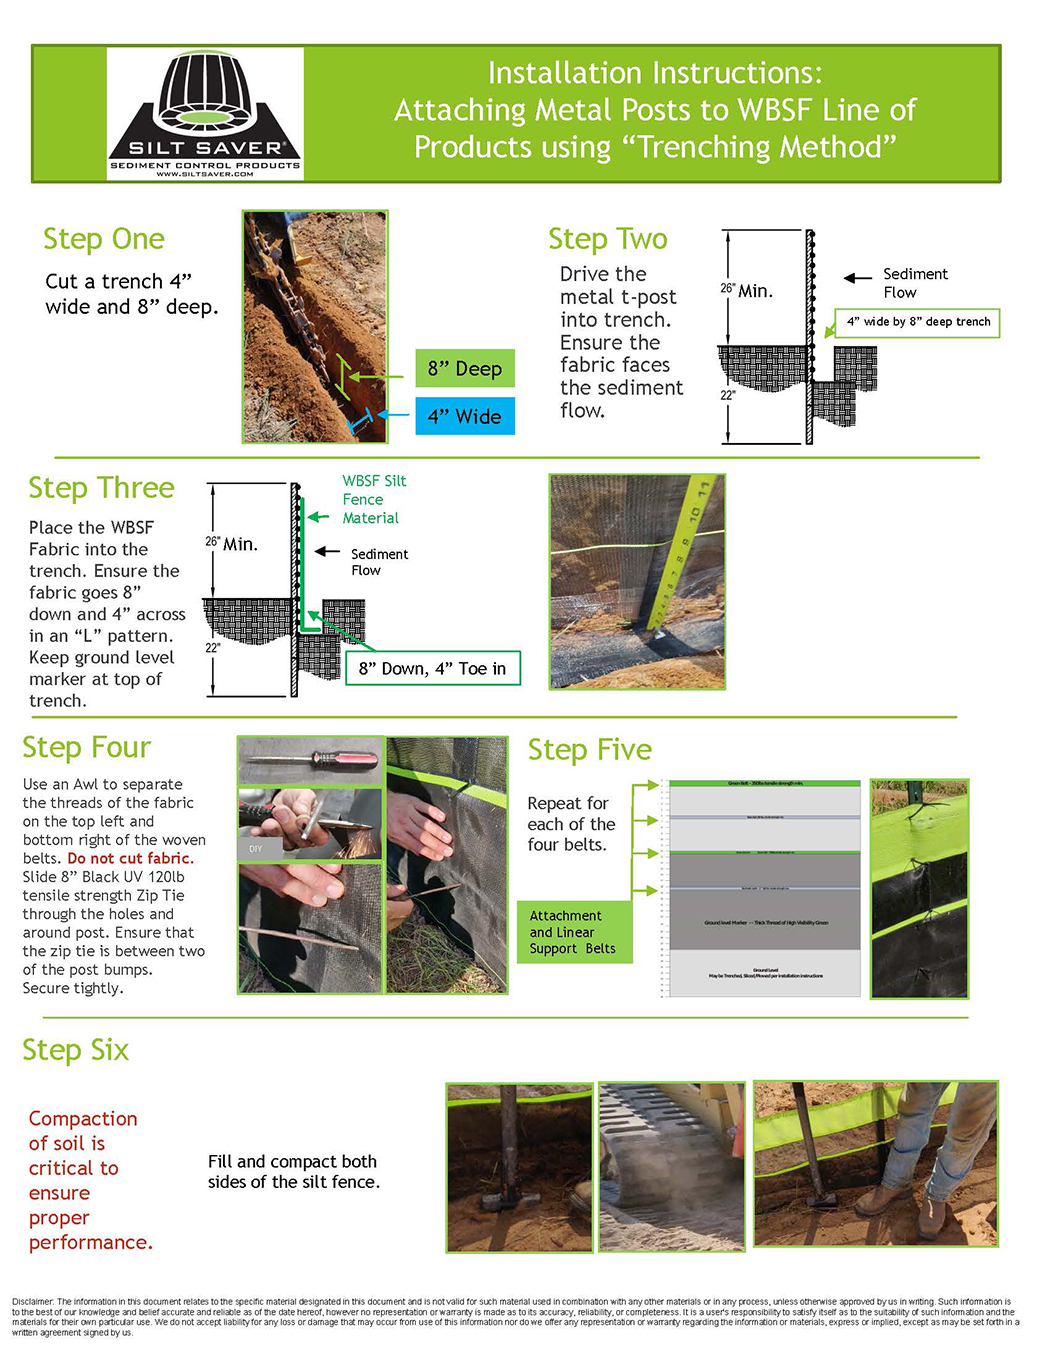 HOW TO INSTALL WBSF line of Products to Metal Posts Trench method kp080320